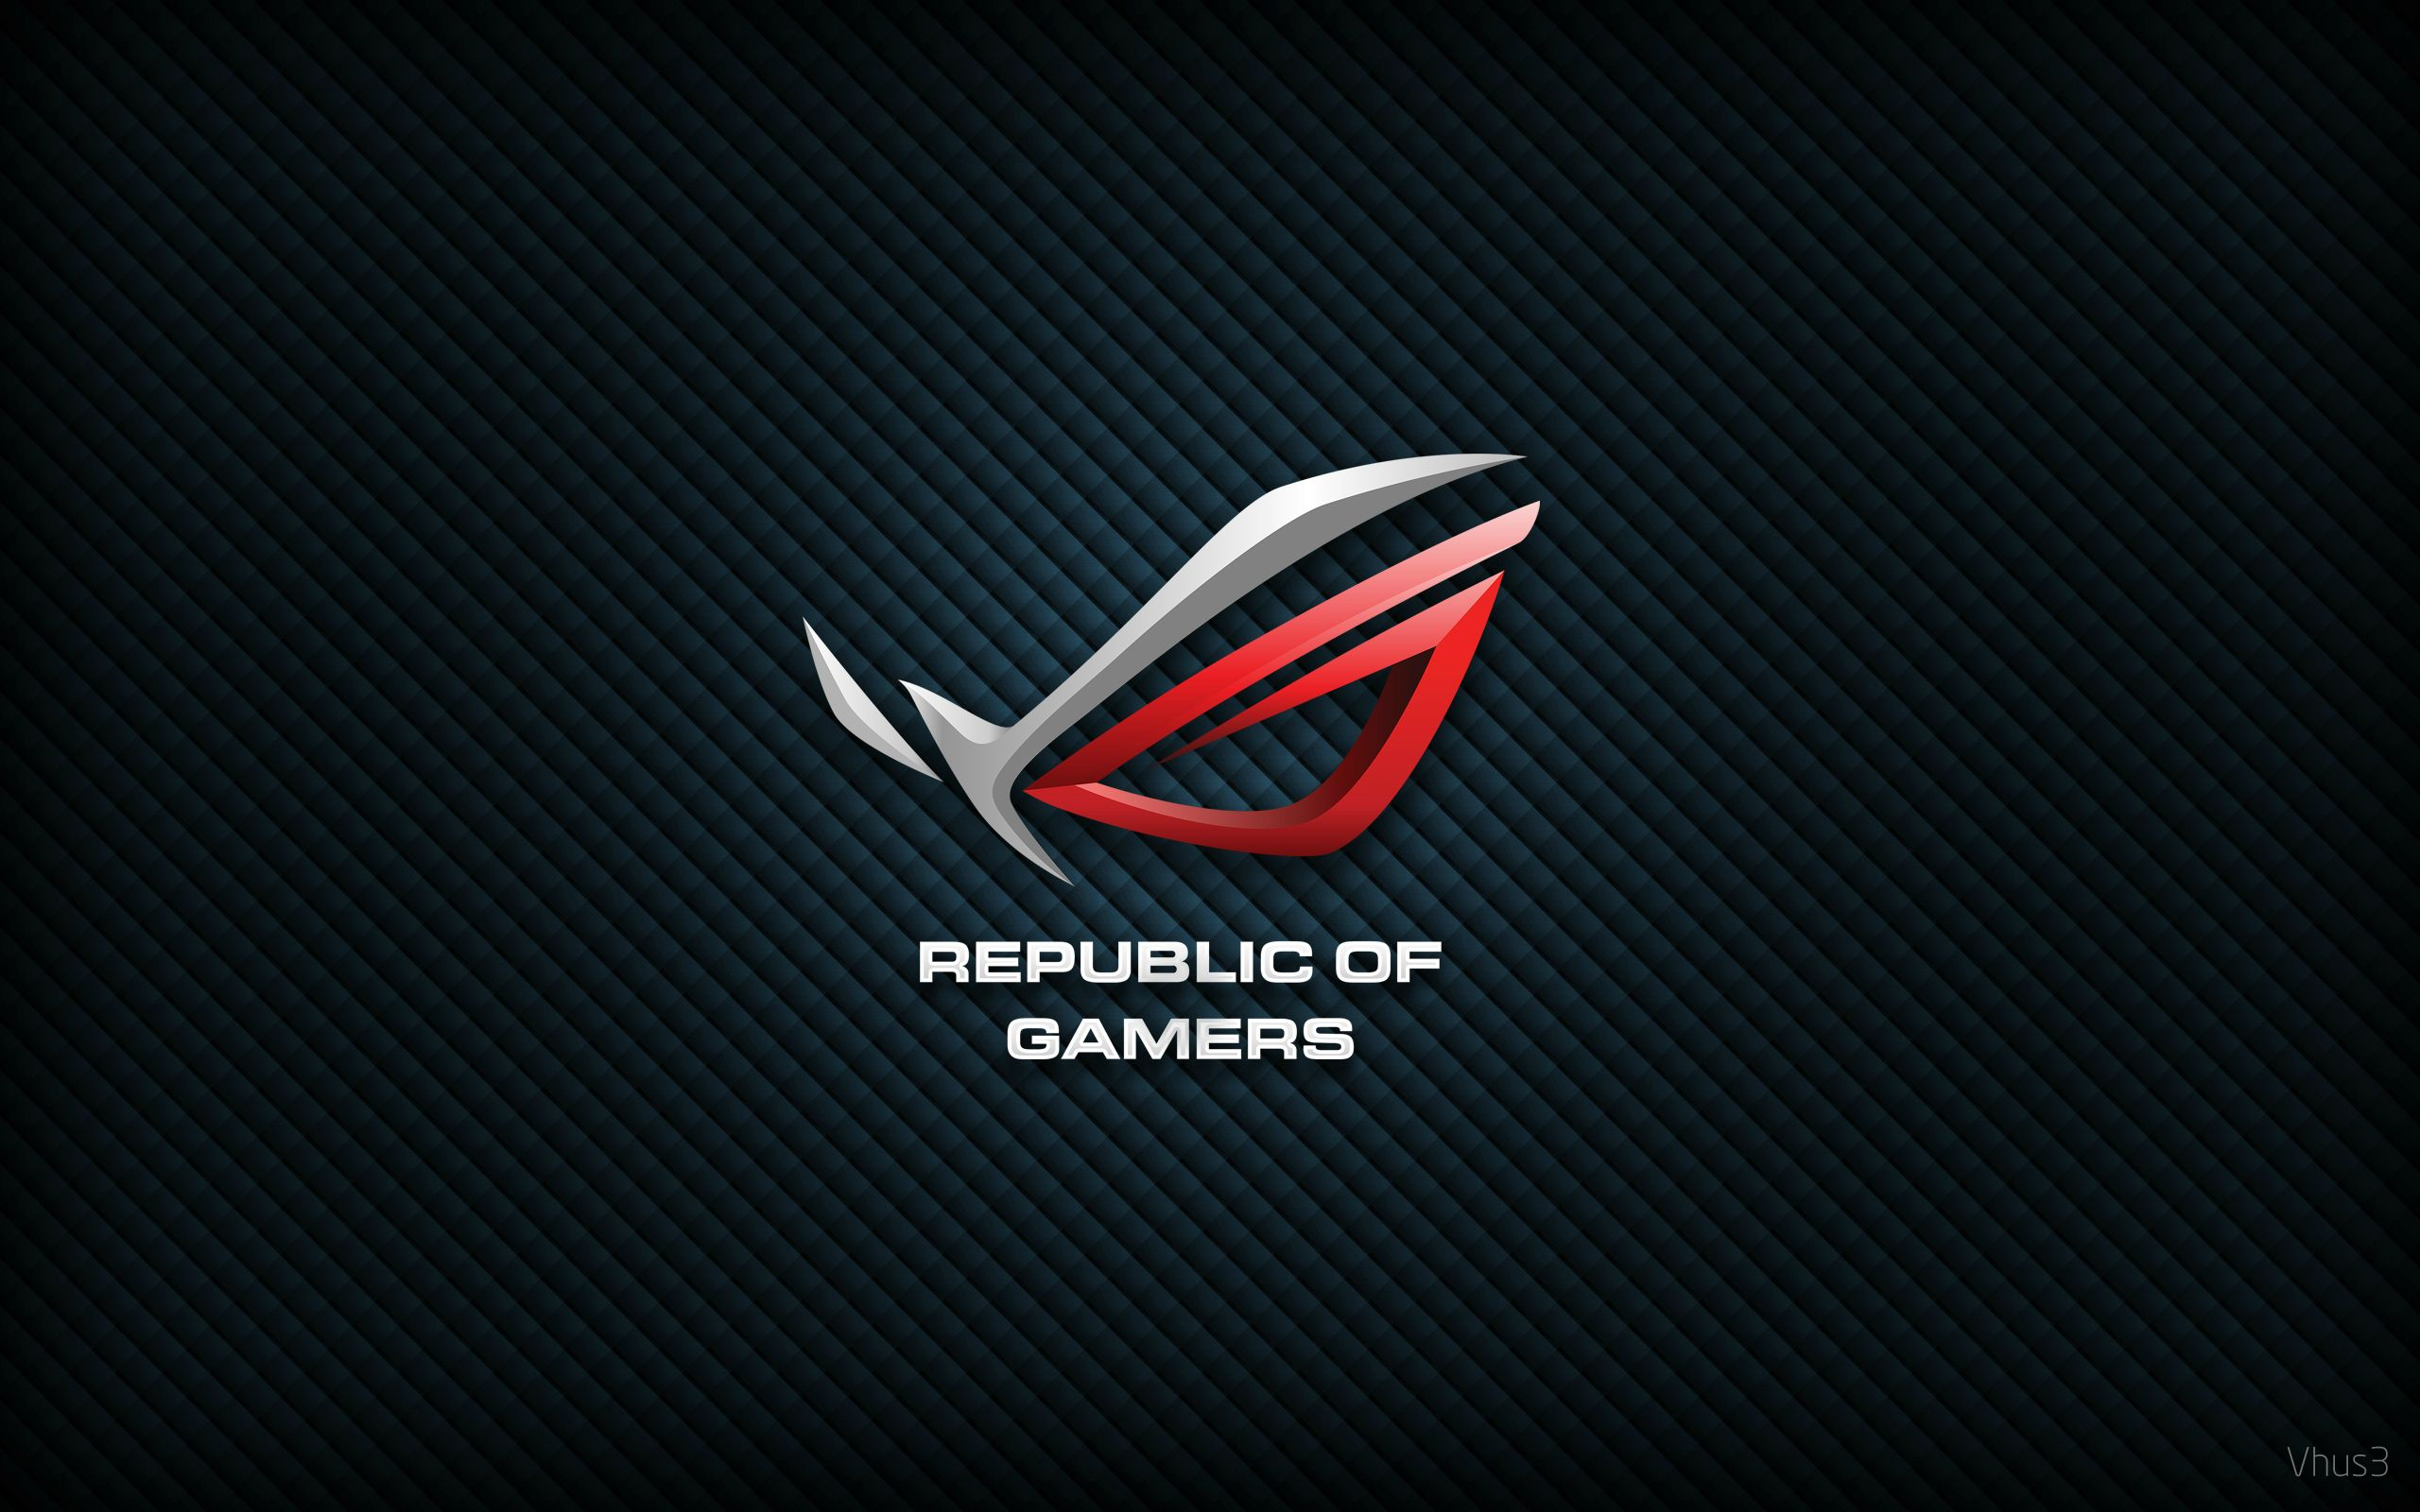 Asus Rog Wallpaper: 2013 ROG Wallpaper Competition: Vote For Your Favorite